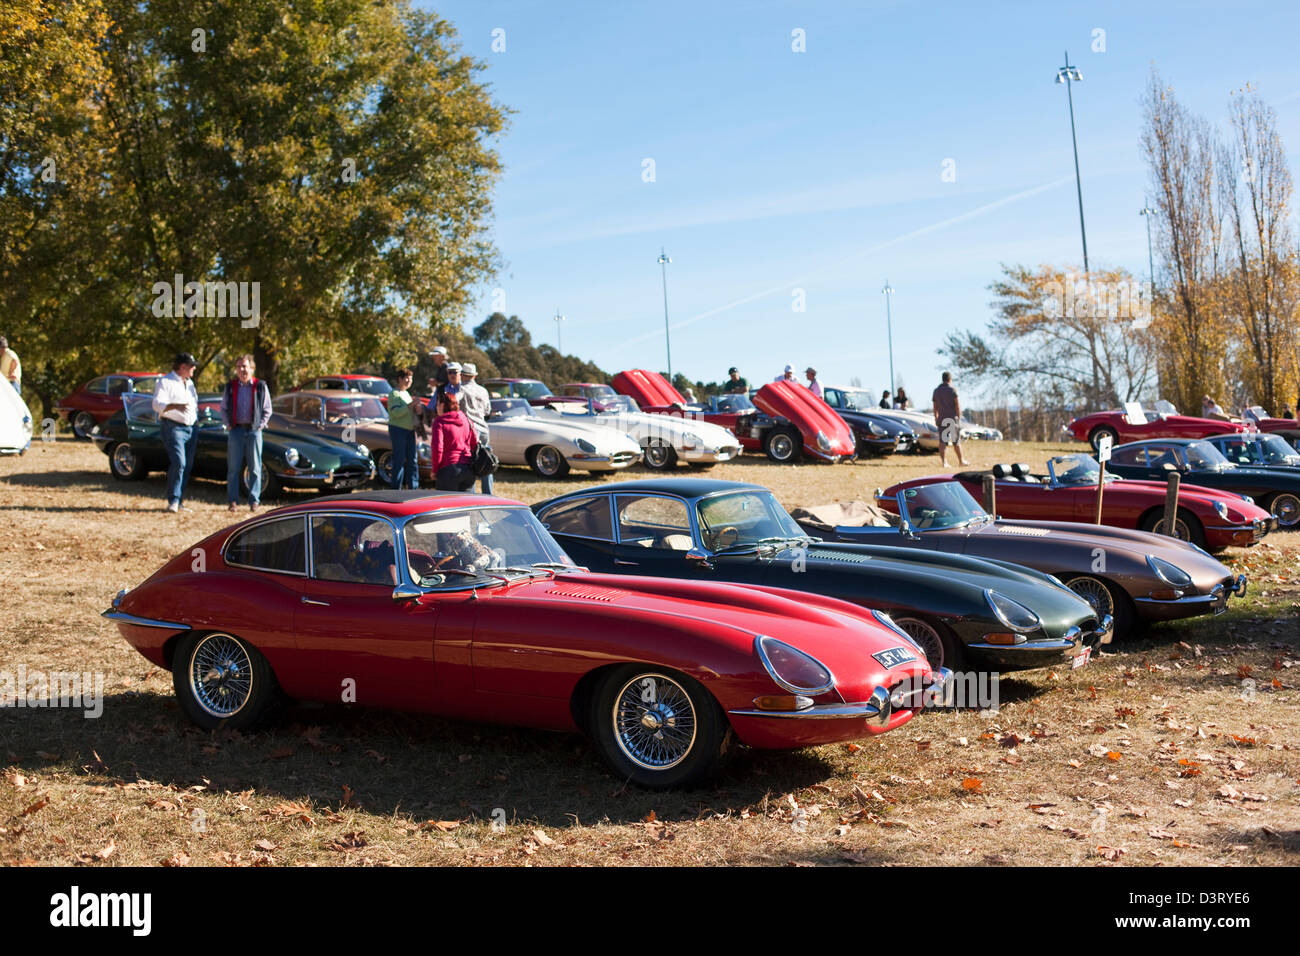 Vintage Jaguar car rally at Parkes. Canberra, Australian Capital Territory (ACT), Australia - Stock Image